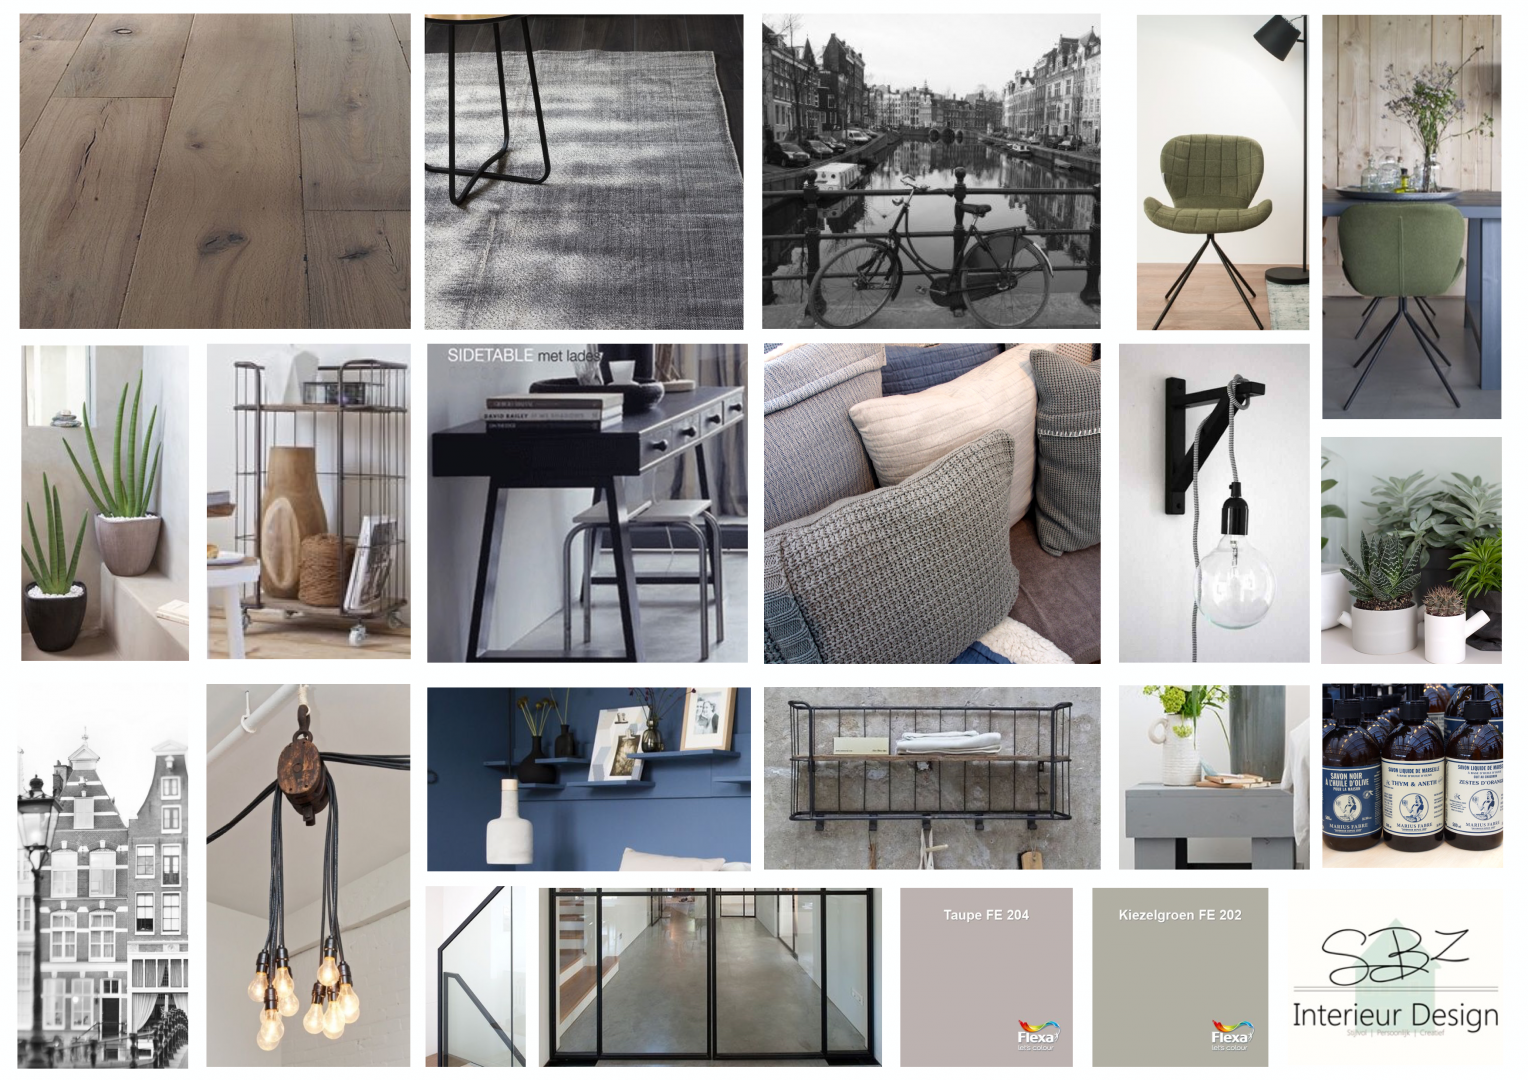 moodboard sbz interieur design t b v loft kinkerstraat sbz interieur design. Black Bedroom Furniture Sets. Home Design Ideas